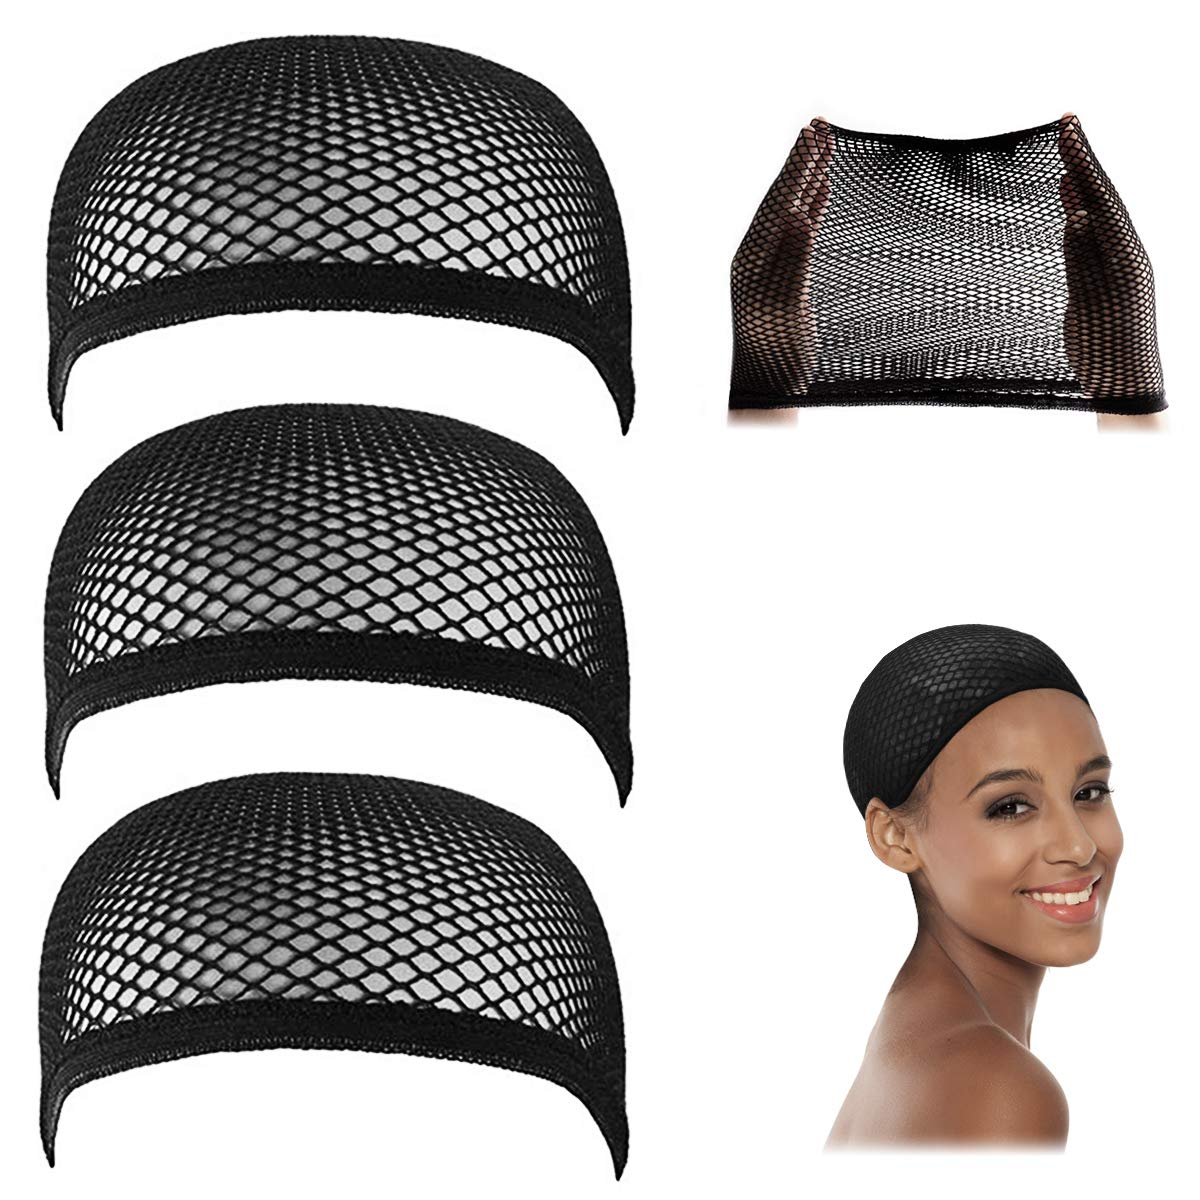 Dreamlover Popularity Crochet Wig Caps Black for sold out Wigs 3 Pac Mesh